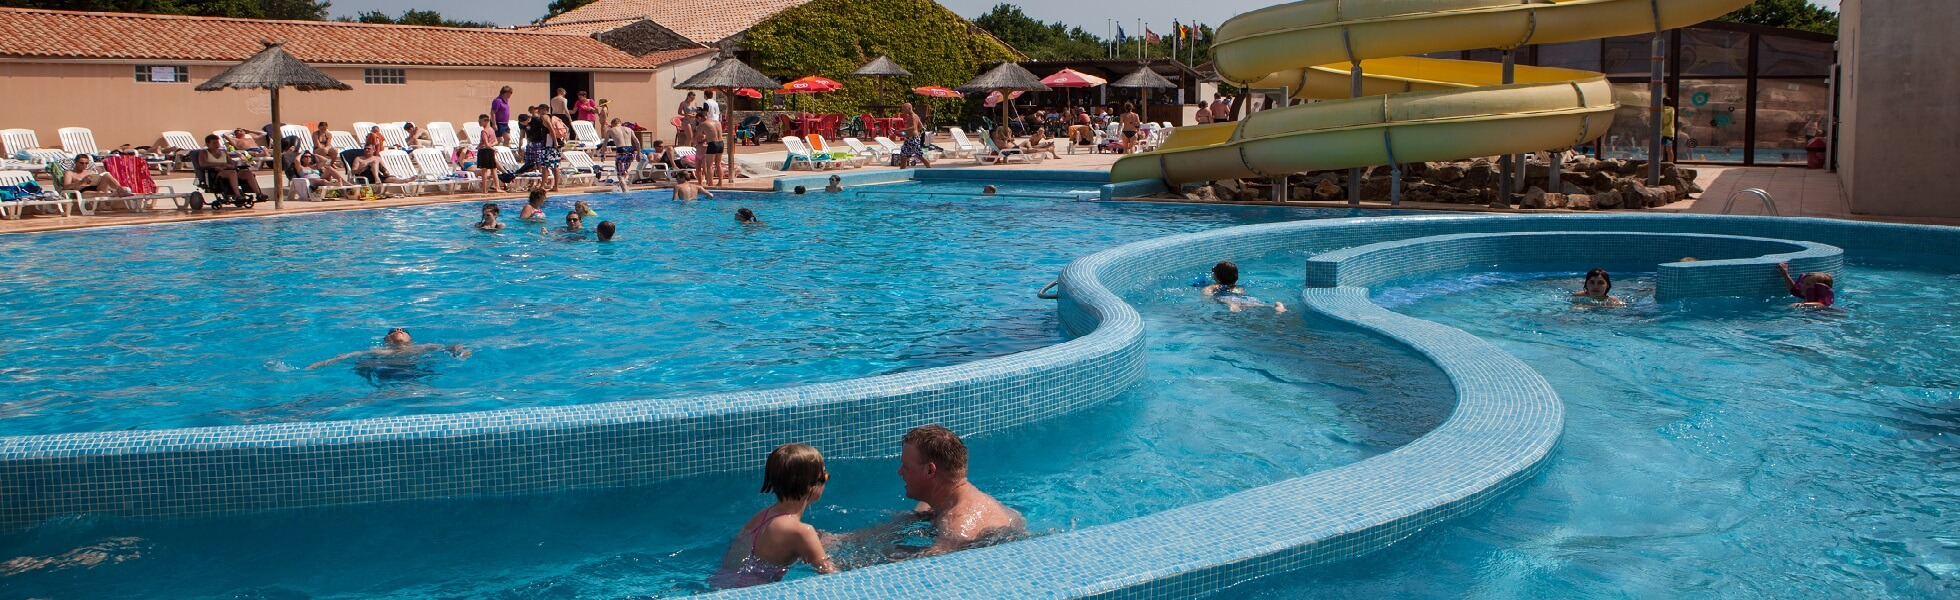 Campsites with waterpark